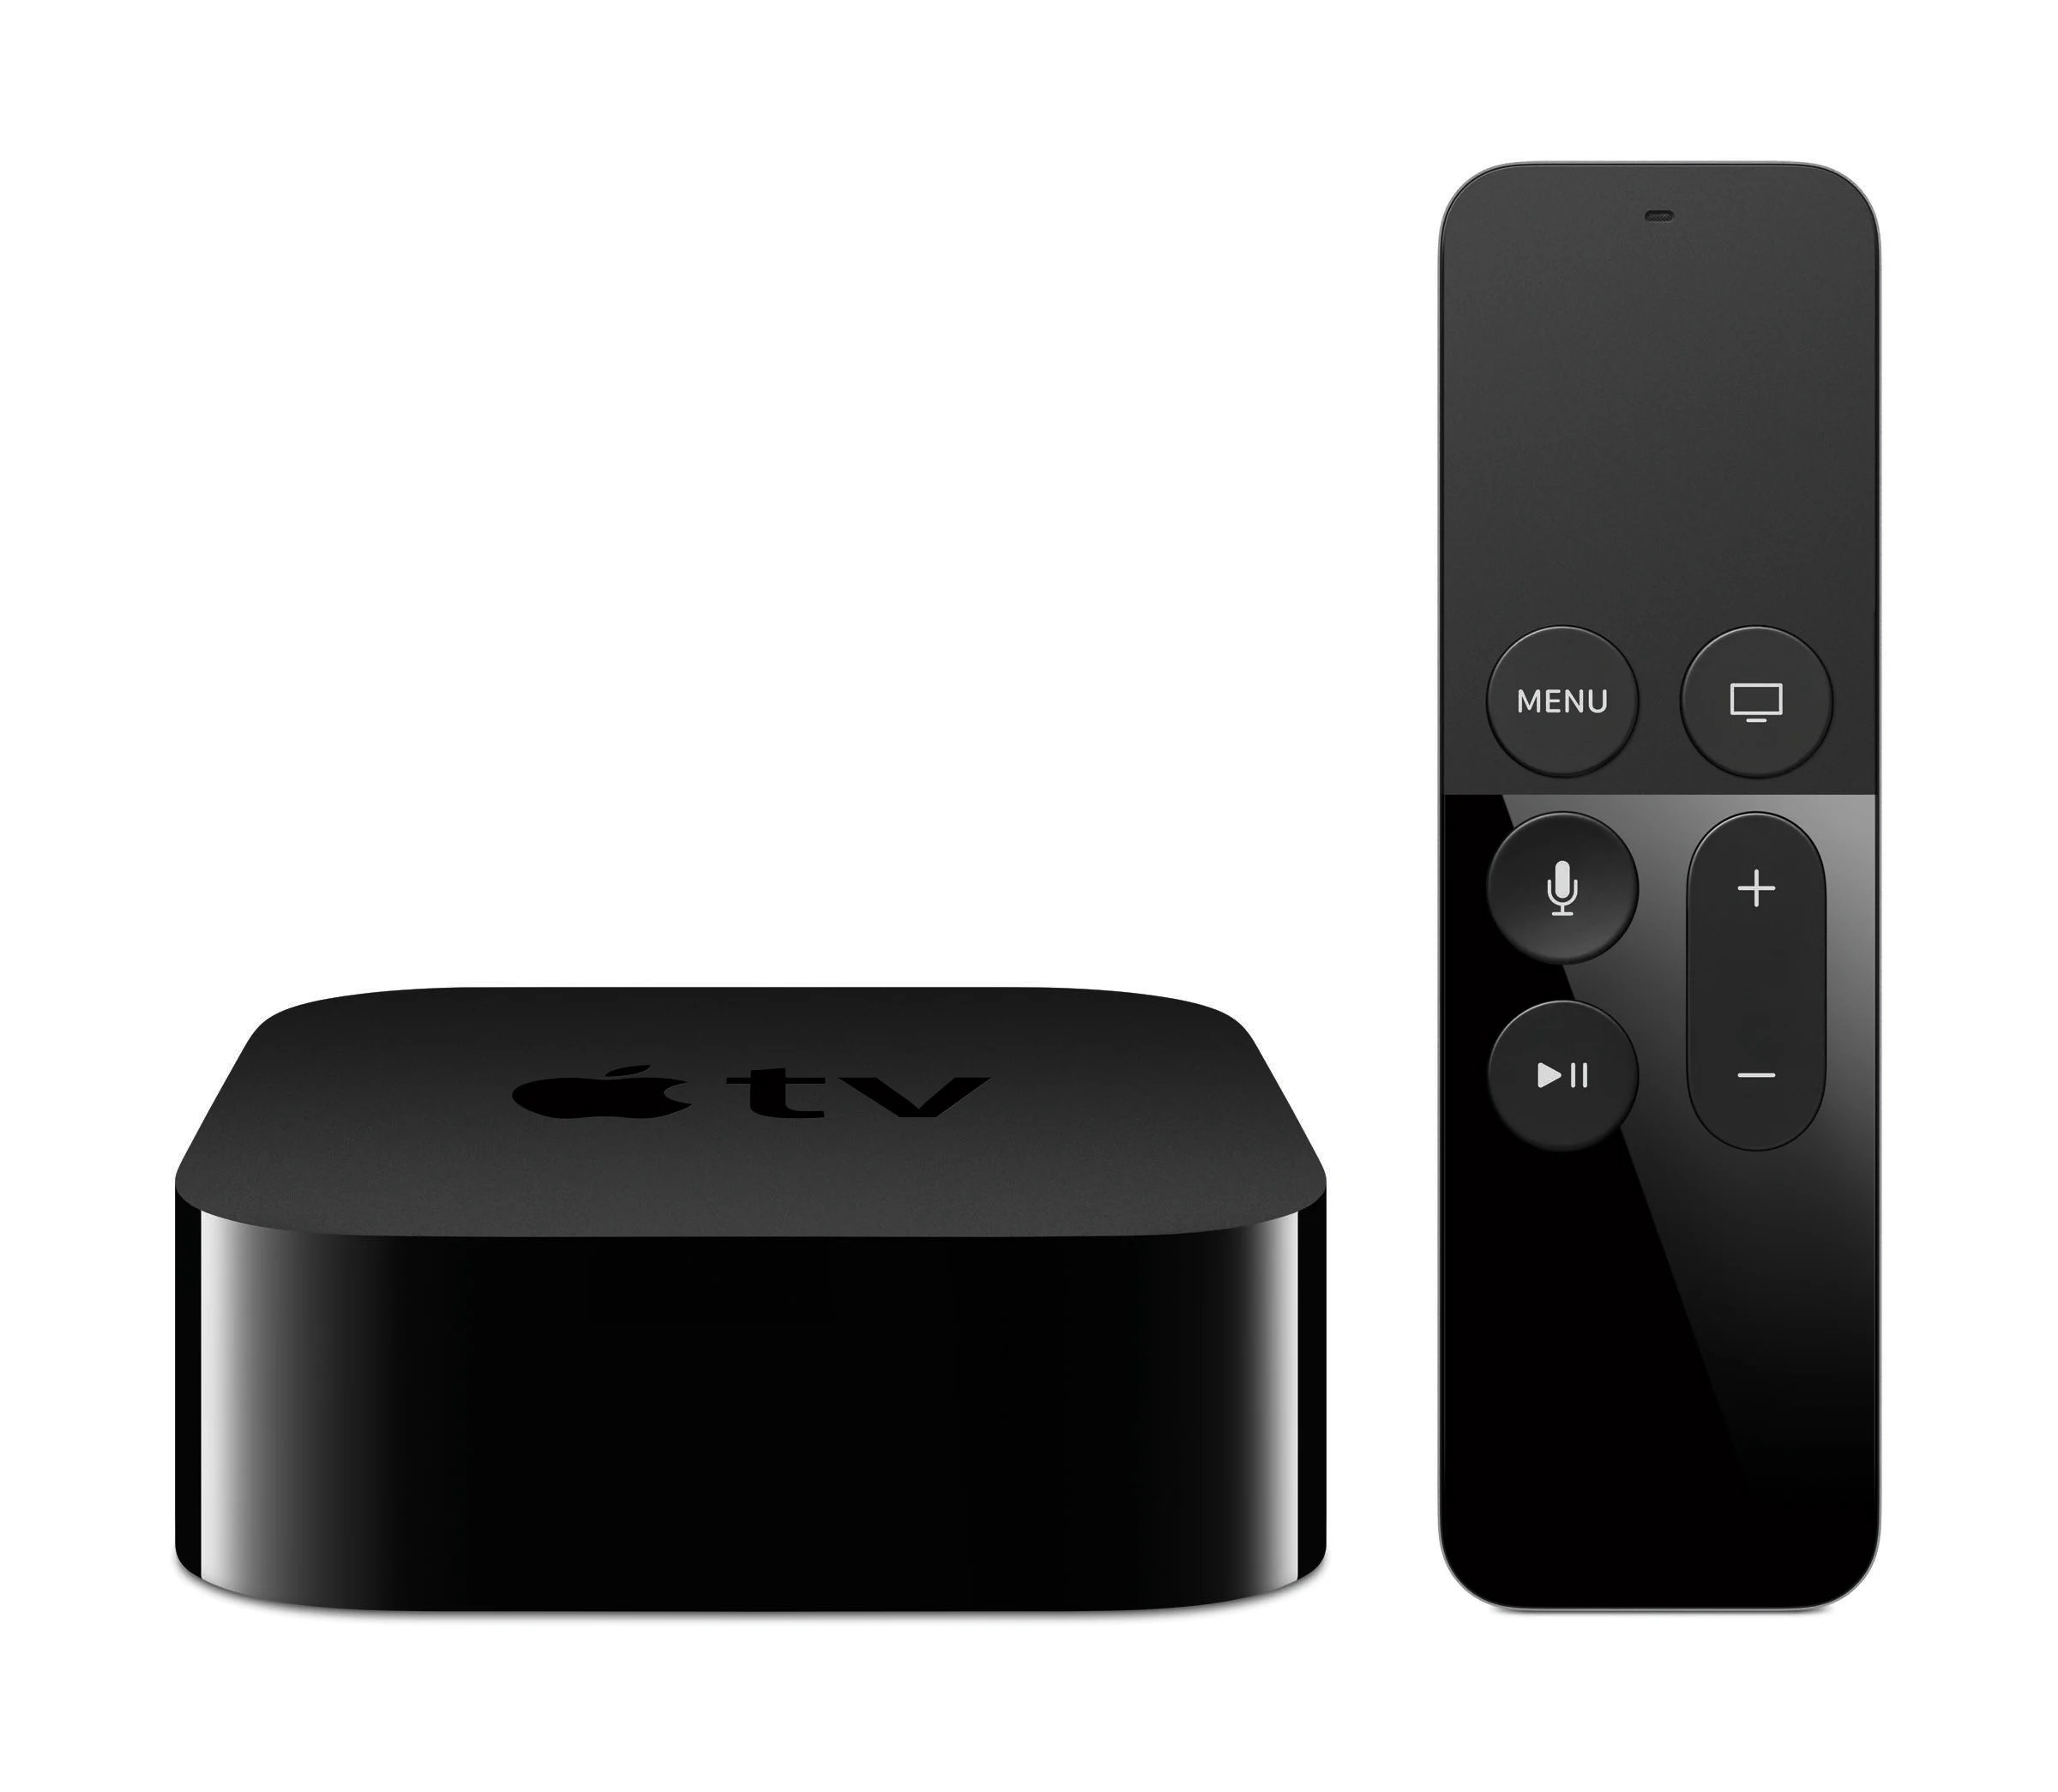 The Apple TV Just Got a Huge Upgrade